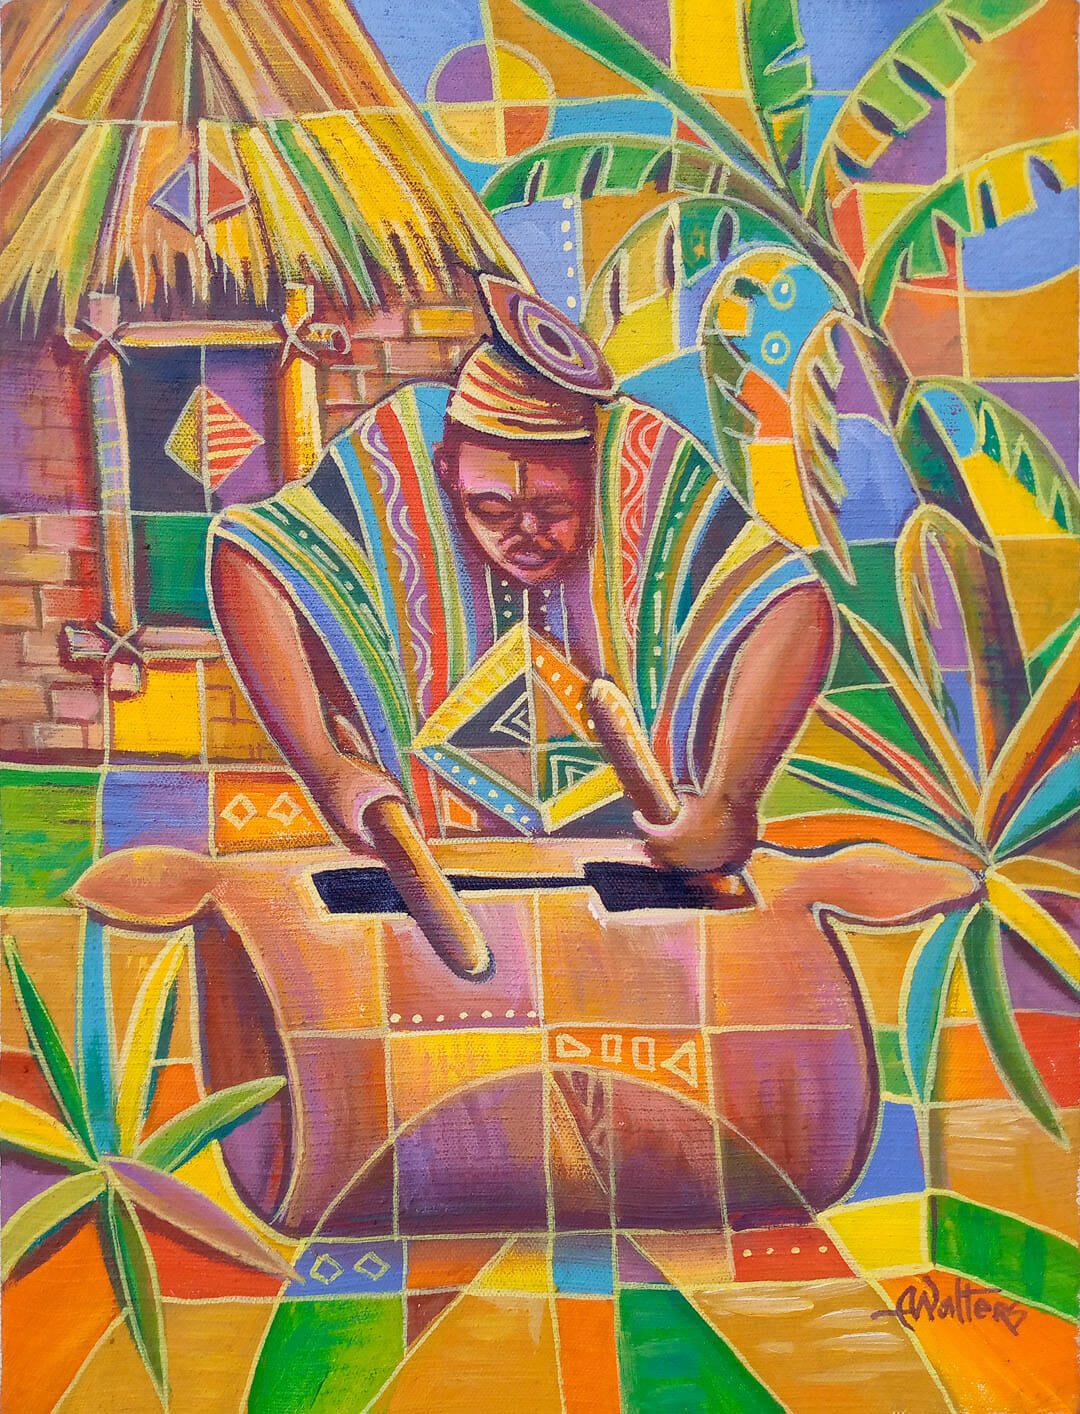 Before there was Twitter, there were drums. Acrylic painting of an African villager delivering a message by use of drums.